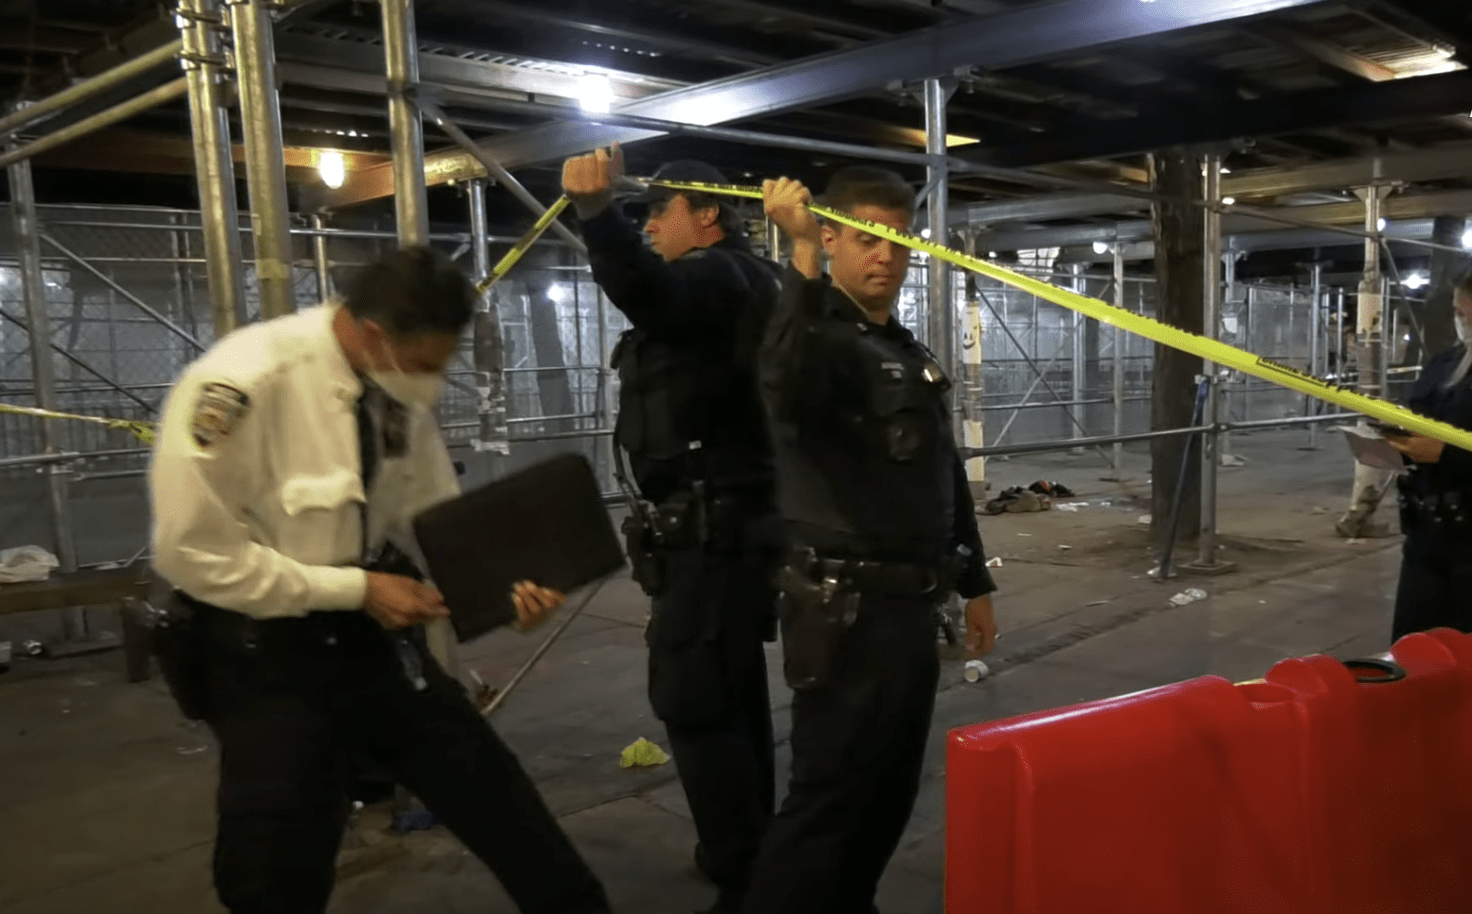 NYPD: Fewer witnesses are coming forward, so crimes and murder rates in the city are exploding